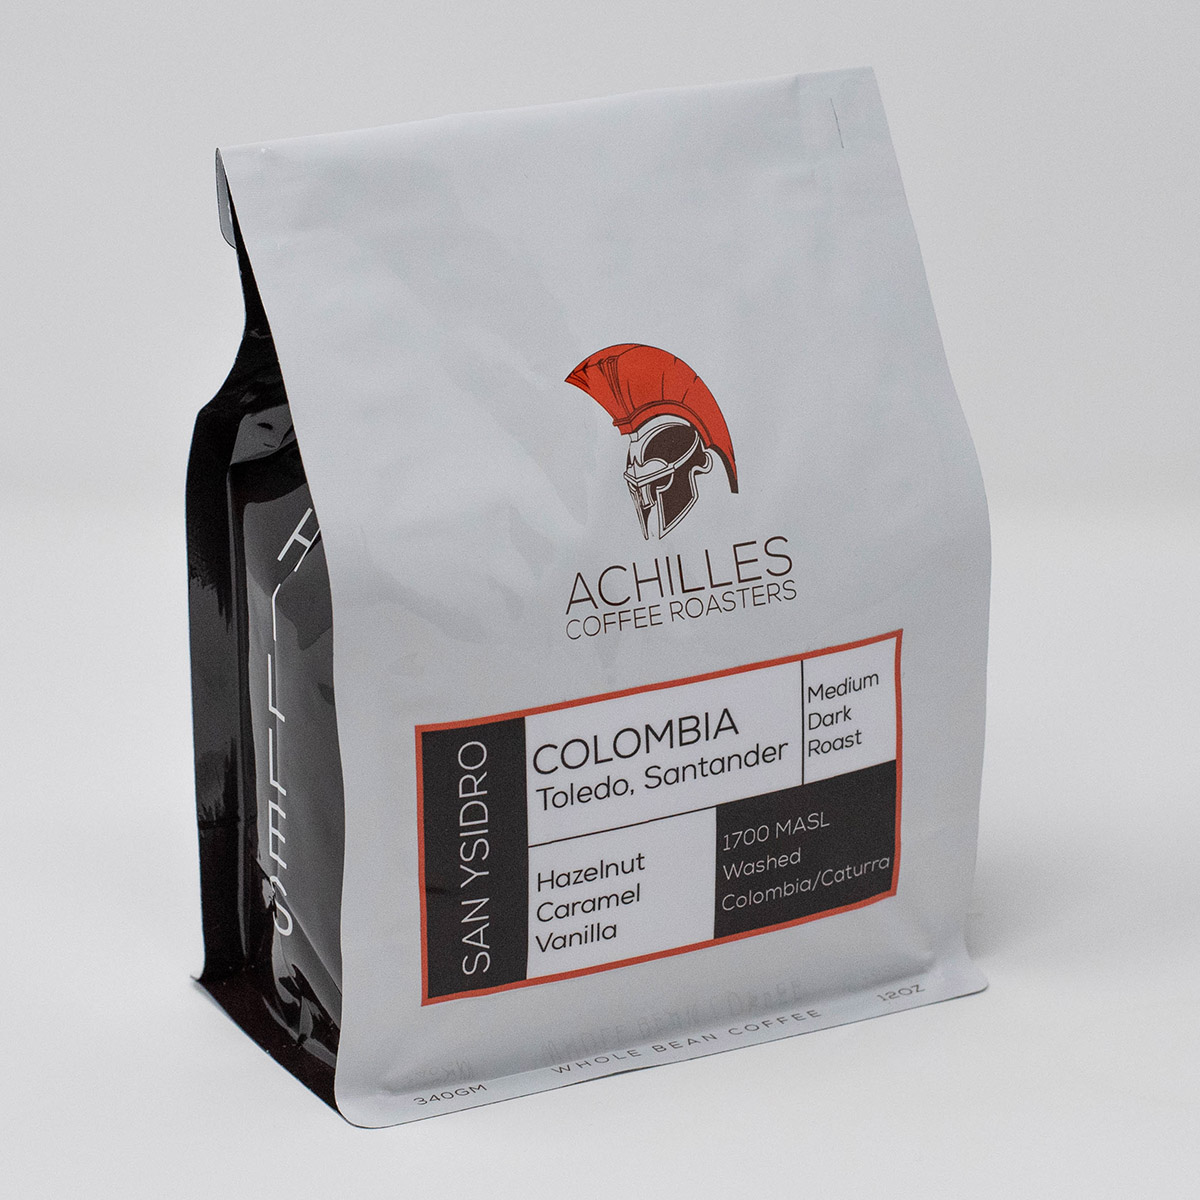 Whole Bean Medium Roast Coffee from Colombia